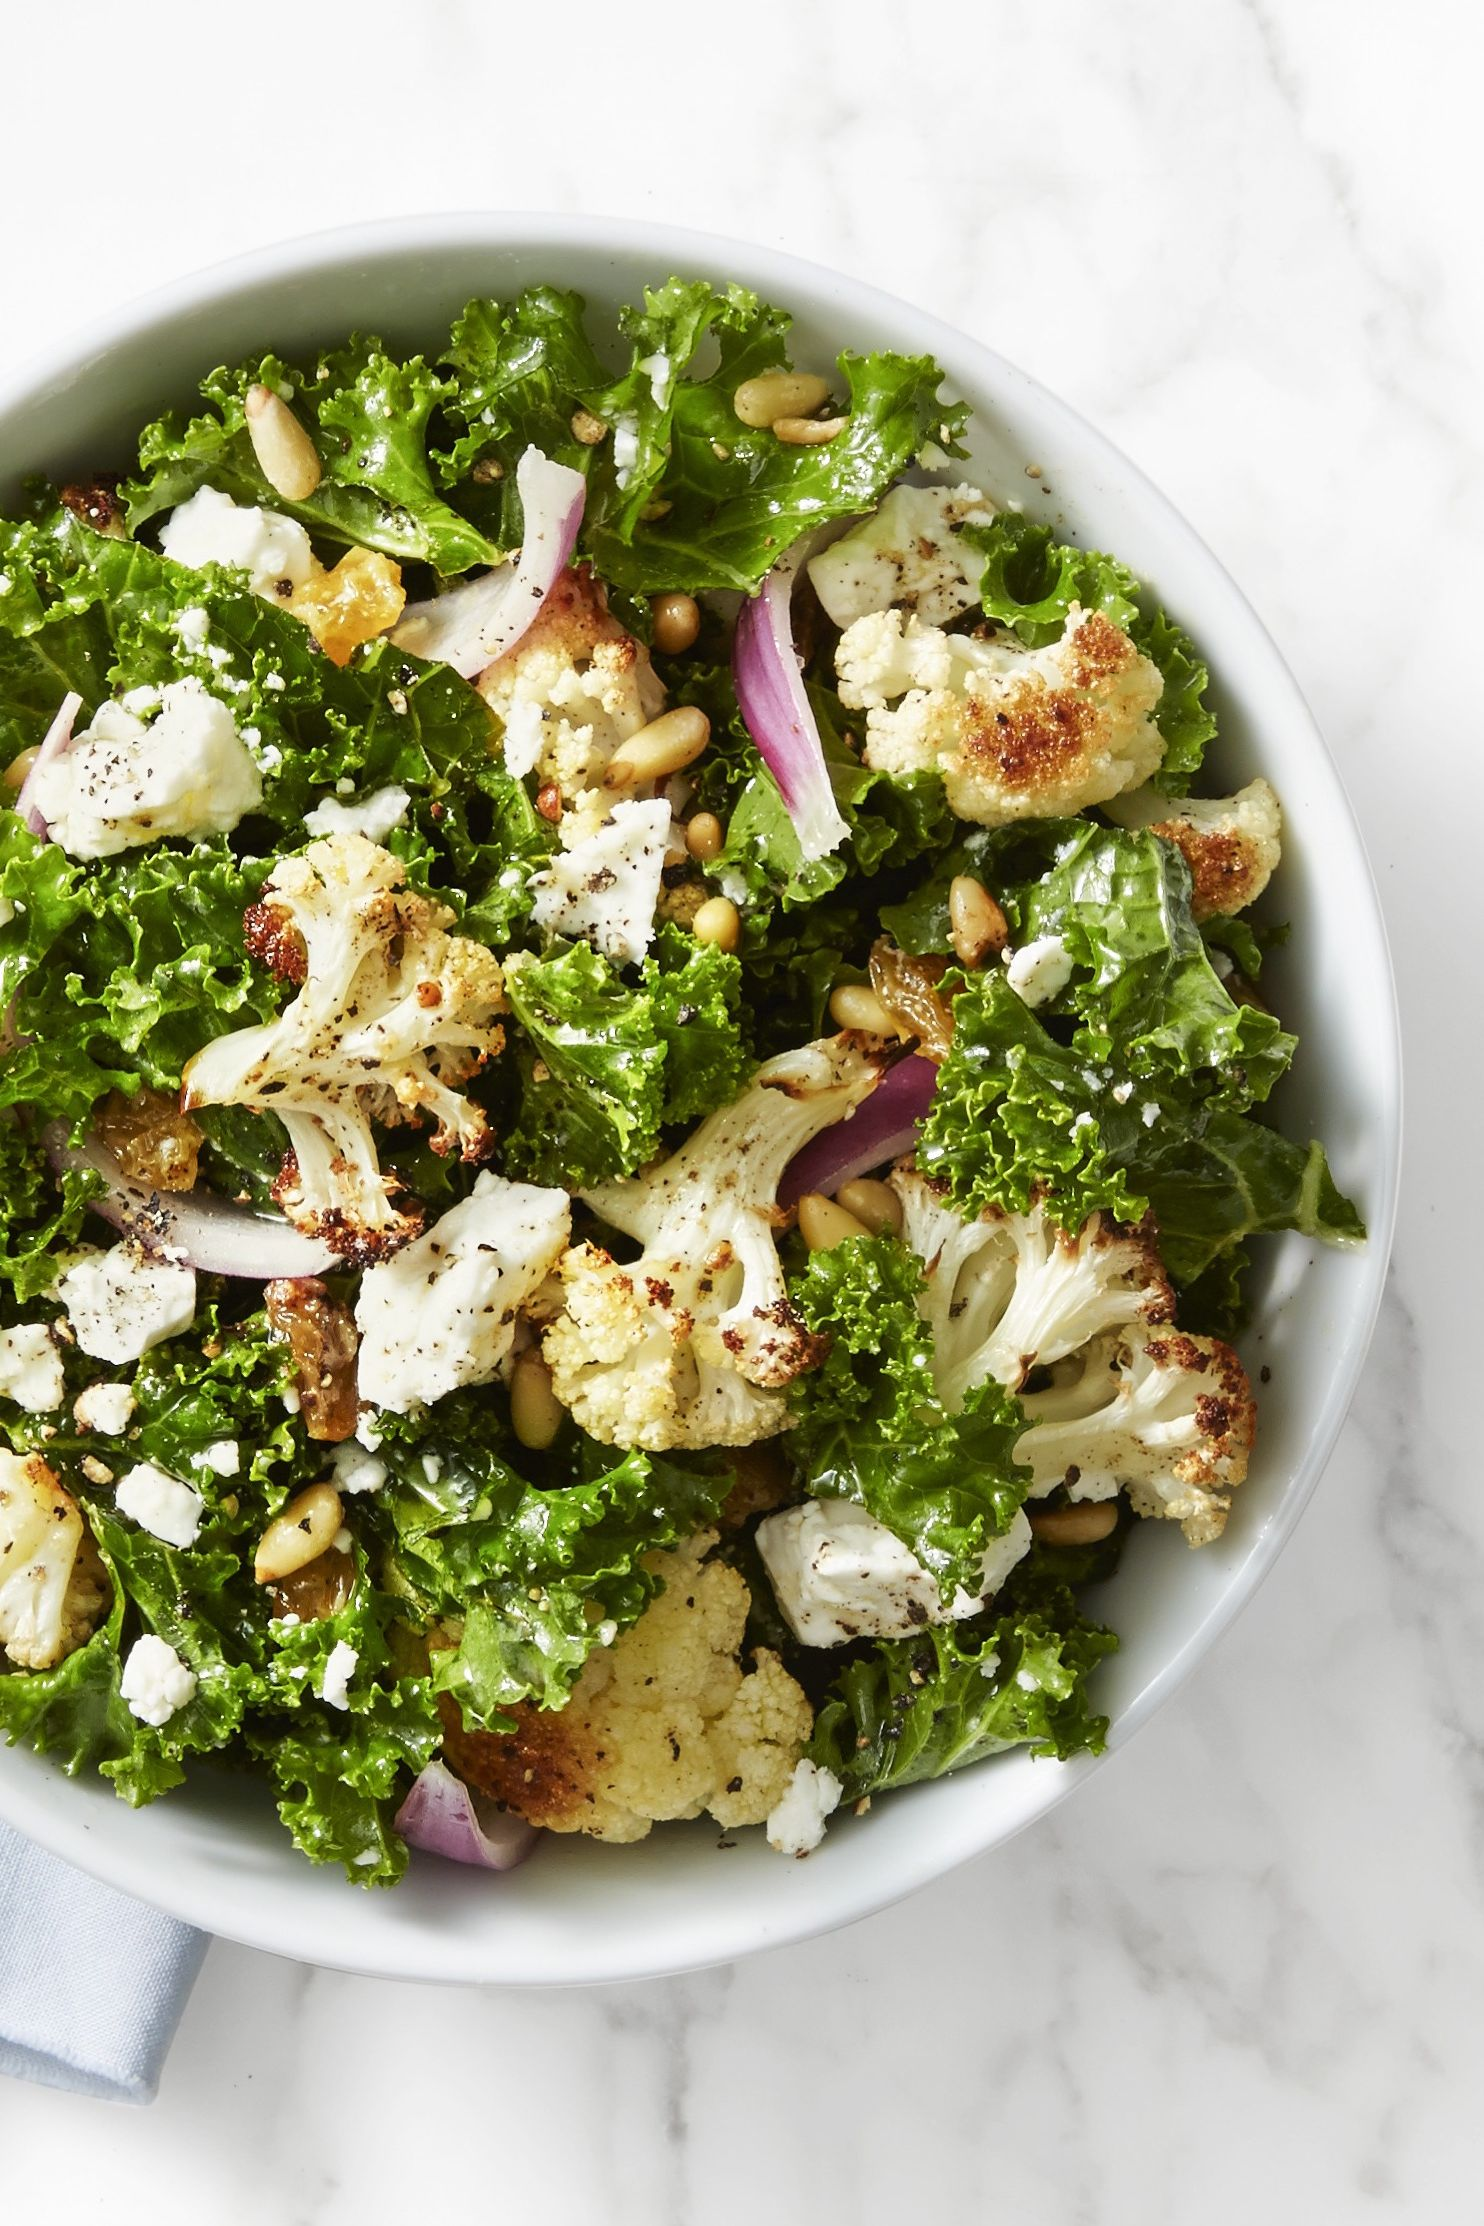 Kale and Roasted Cauliflower Salad